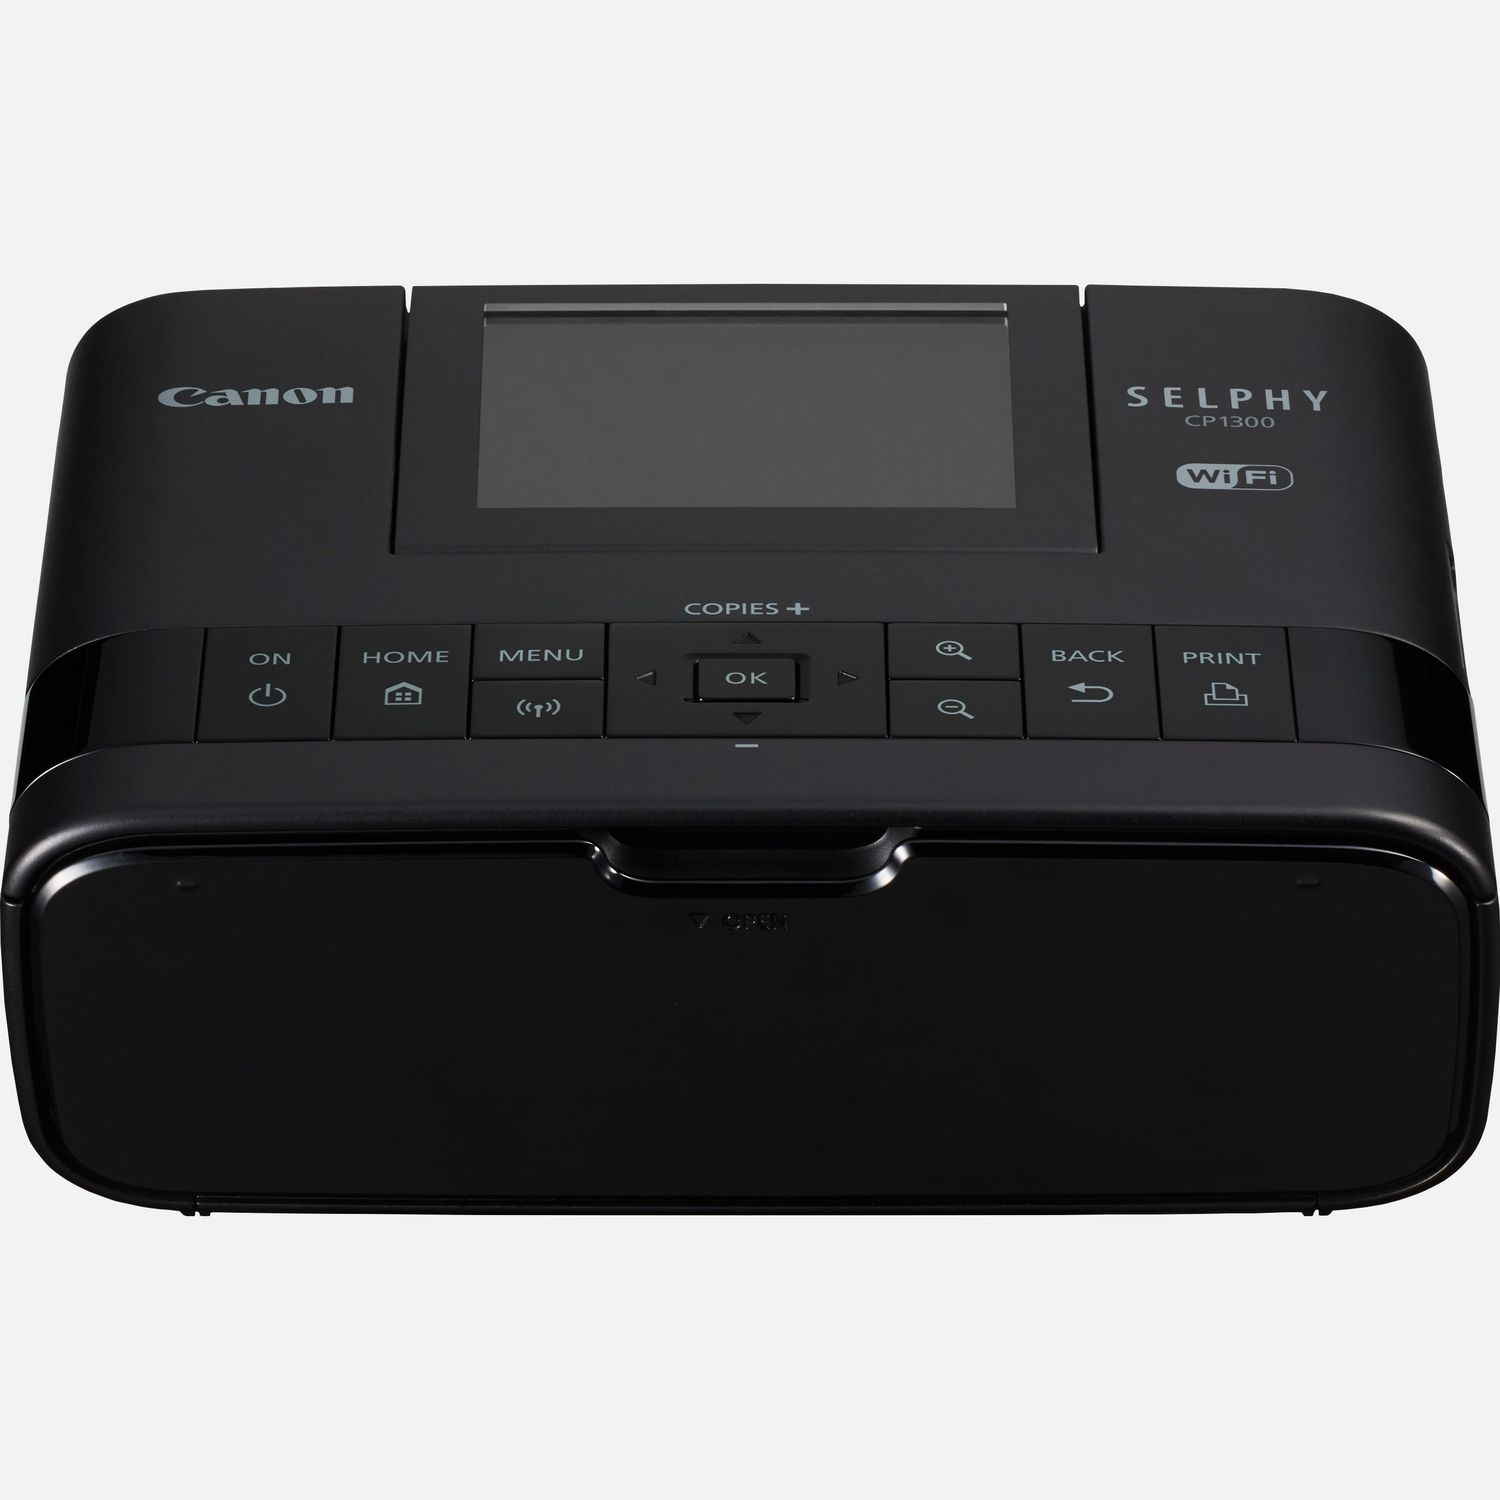 canon selphy cp400 software download